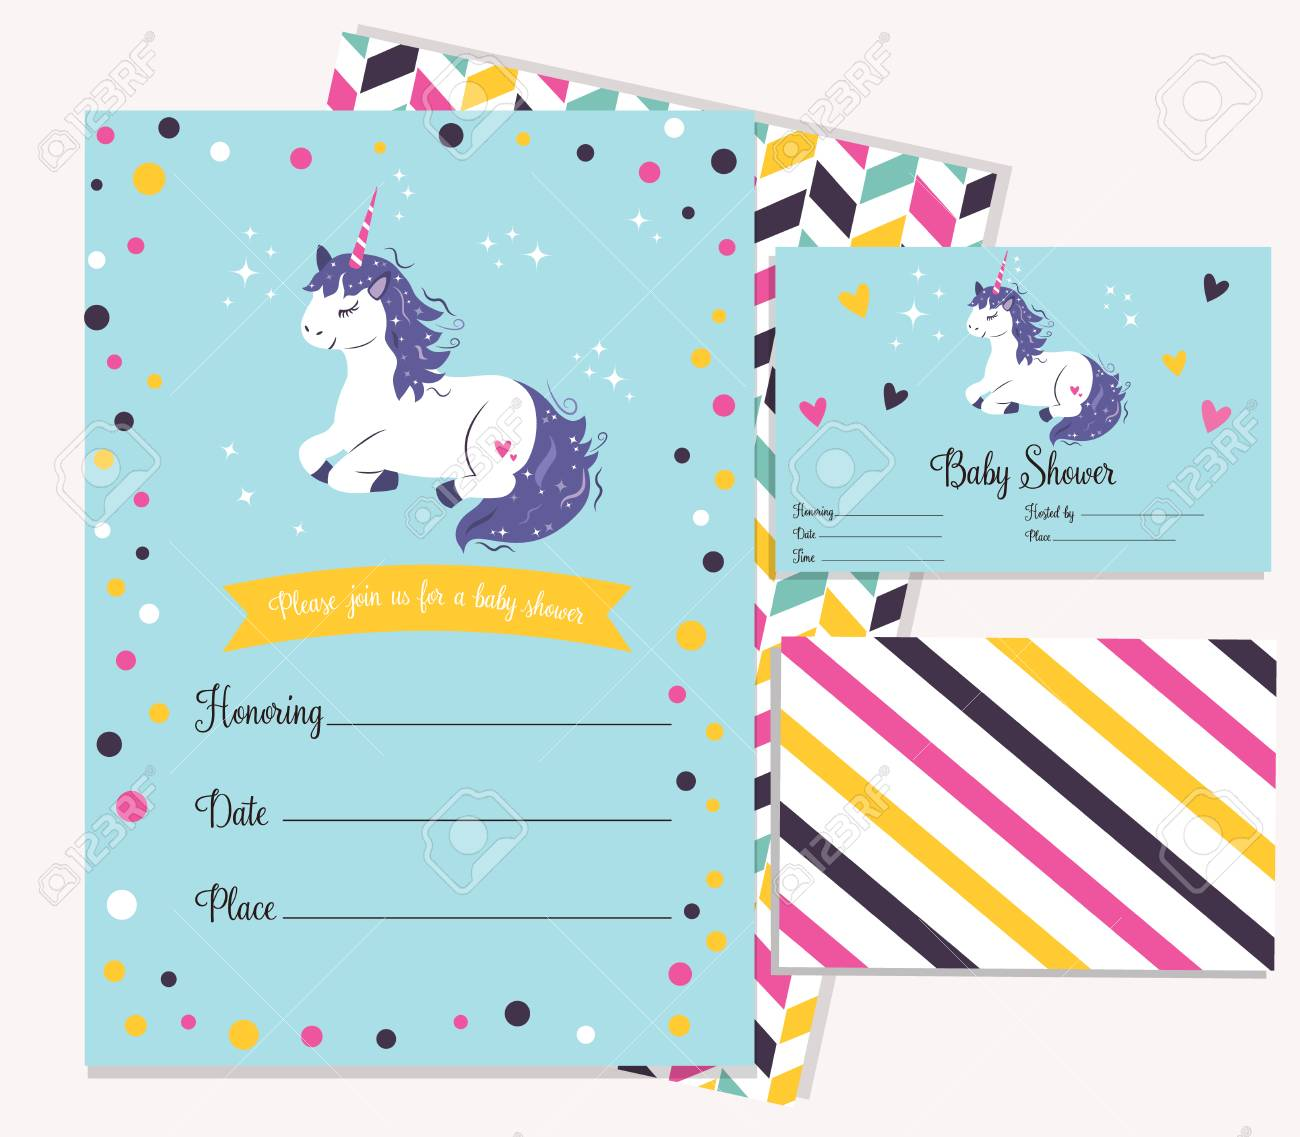 Baby Shower Invitation Template With Cute Unicorn Royalty Free